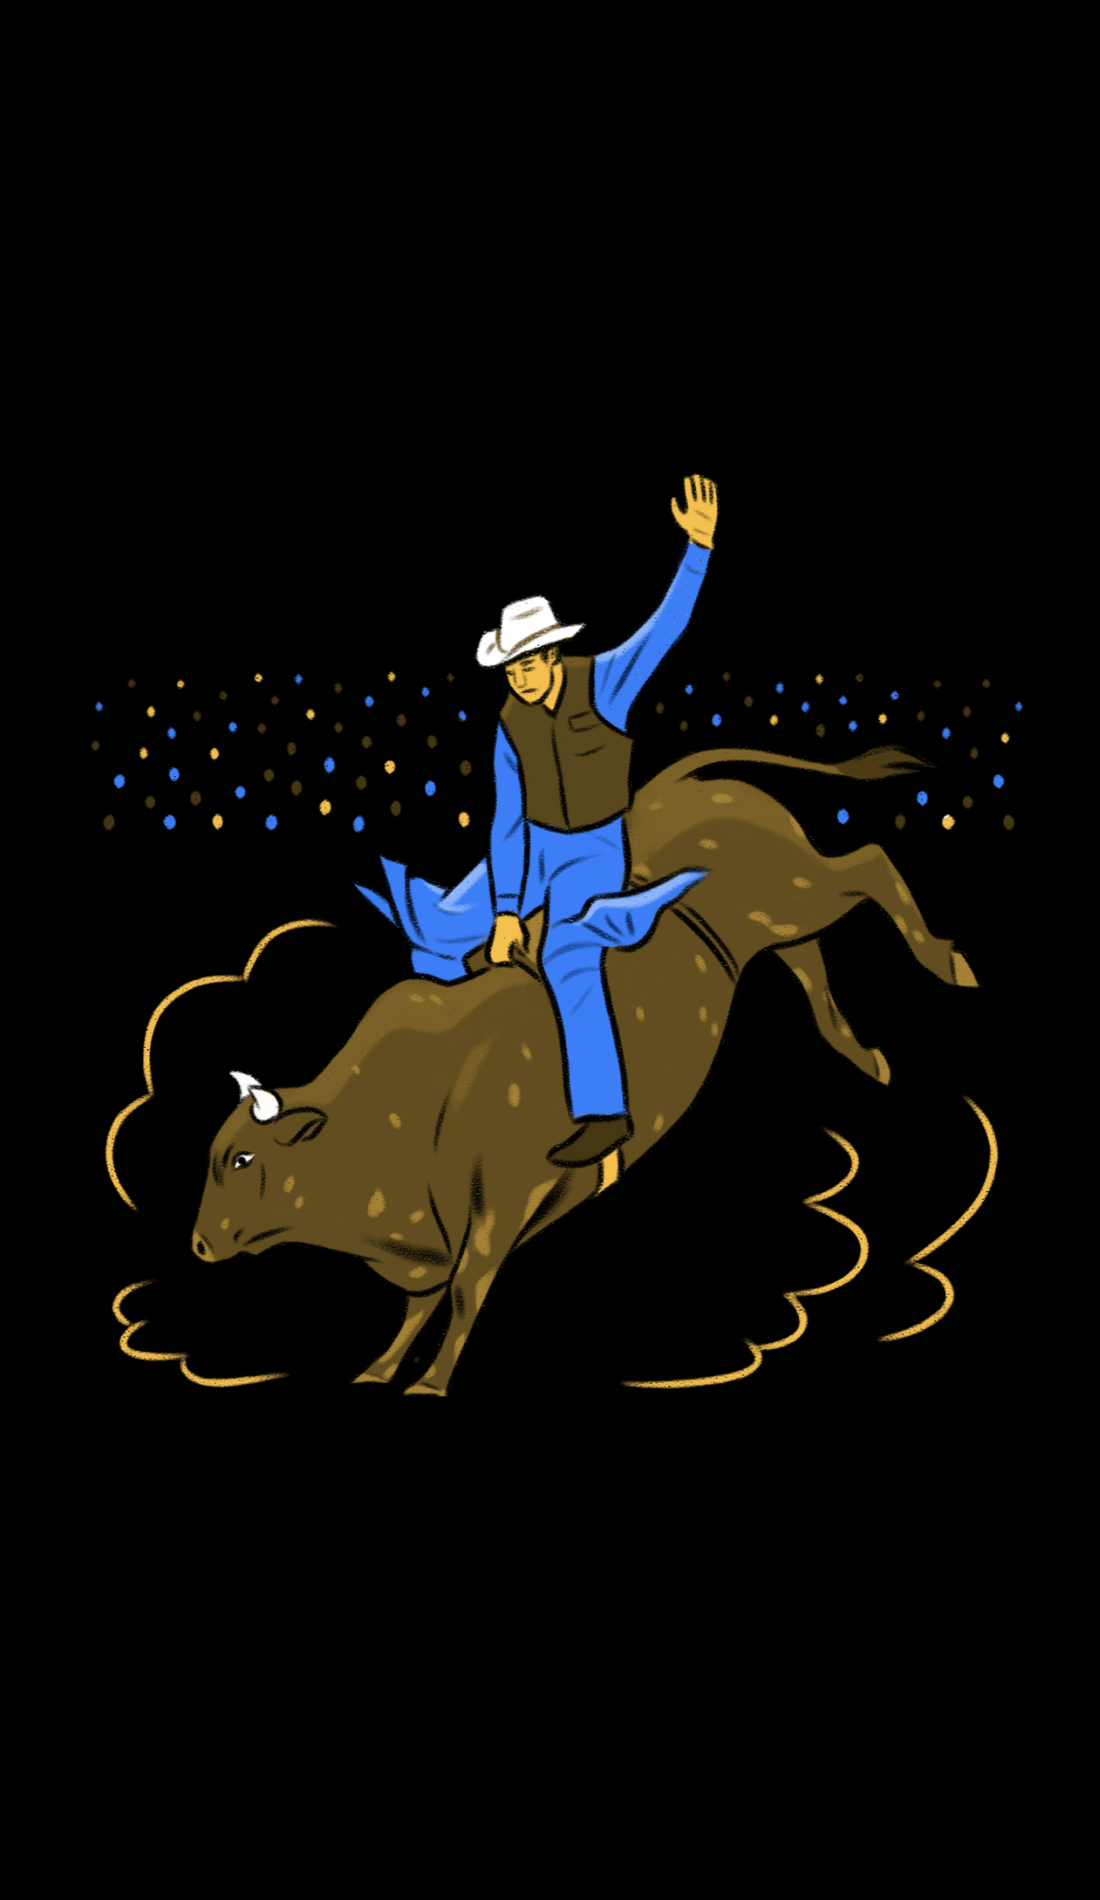 A San Antonio Stock Show and Rodeo live event